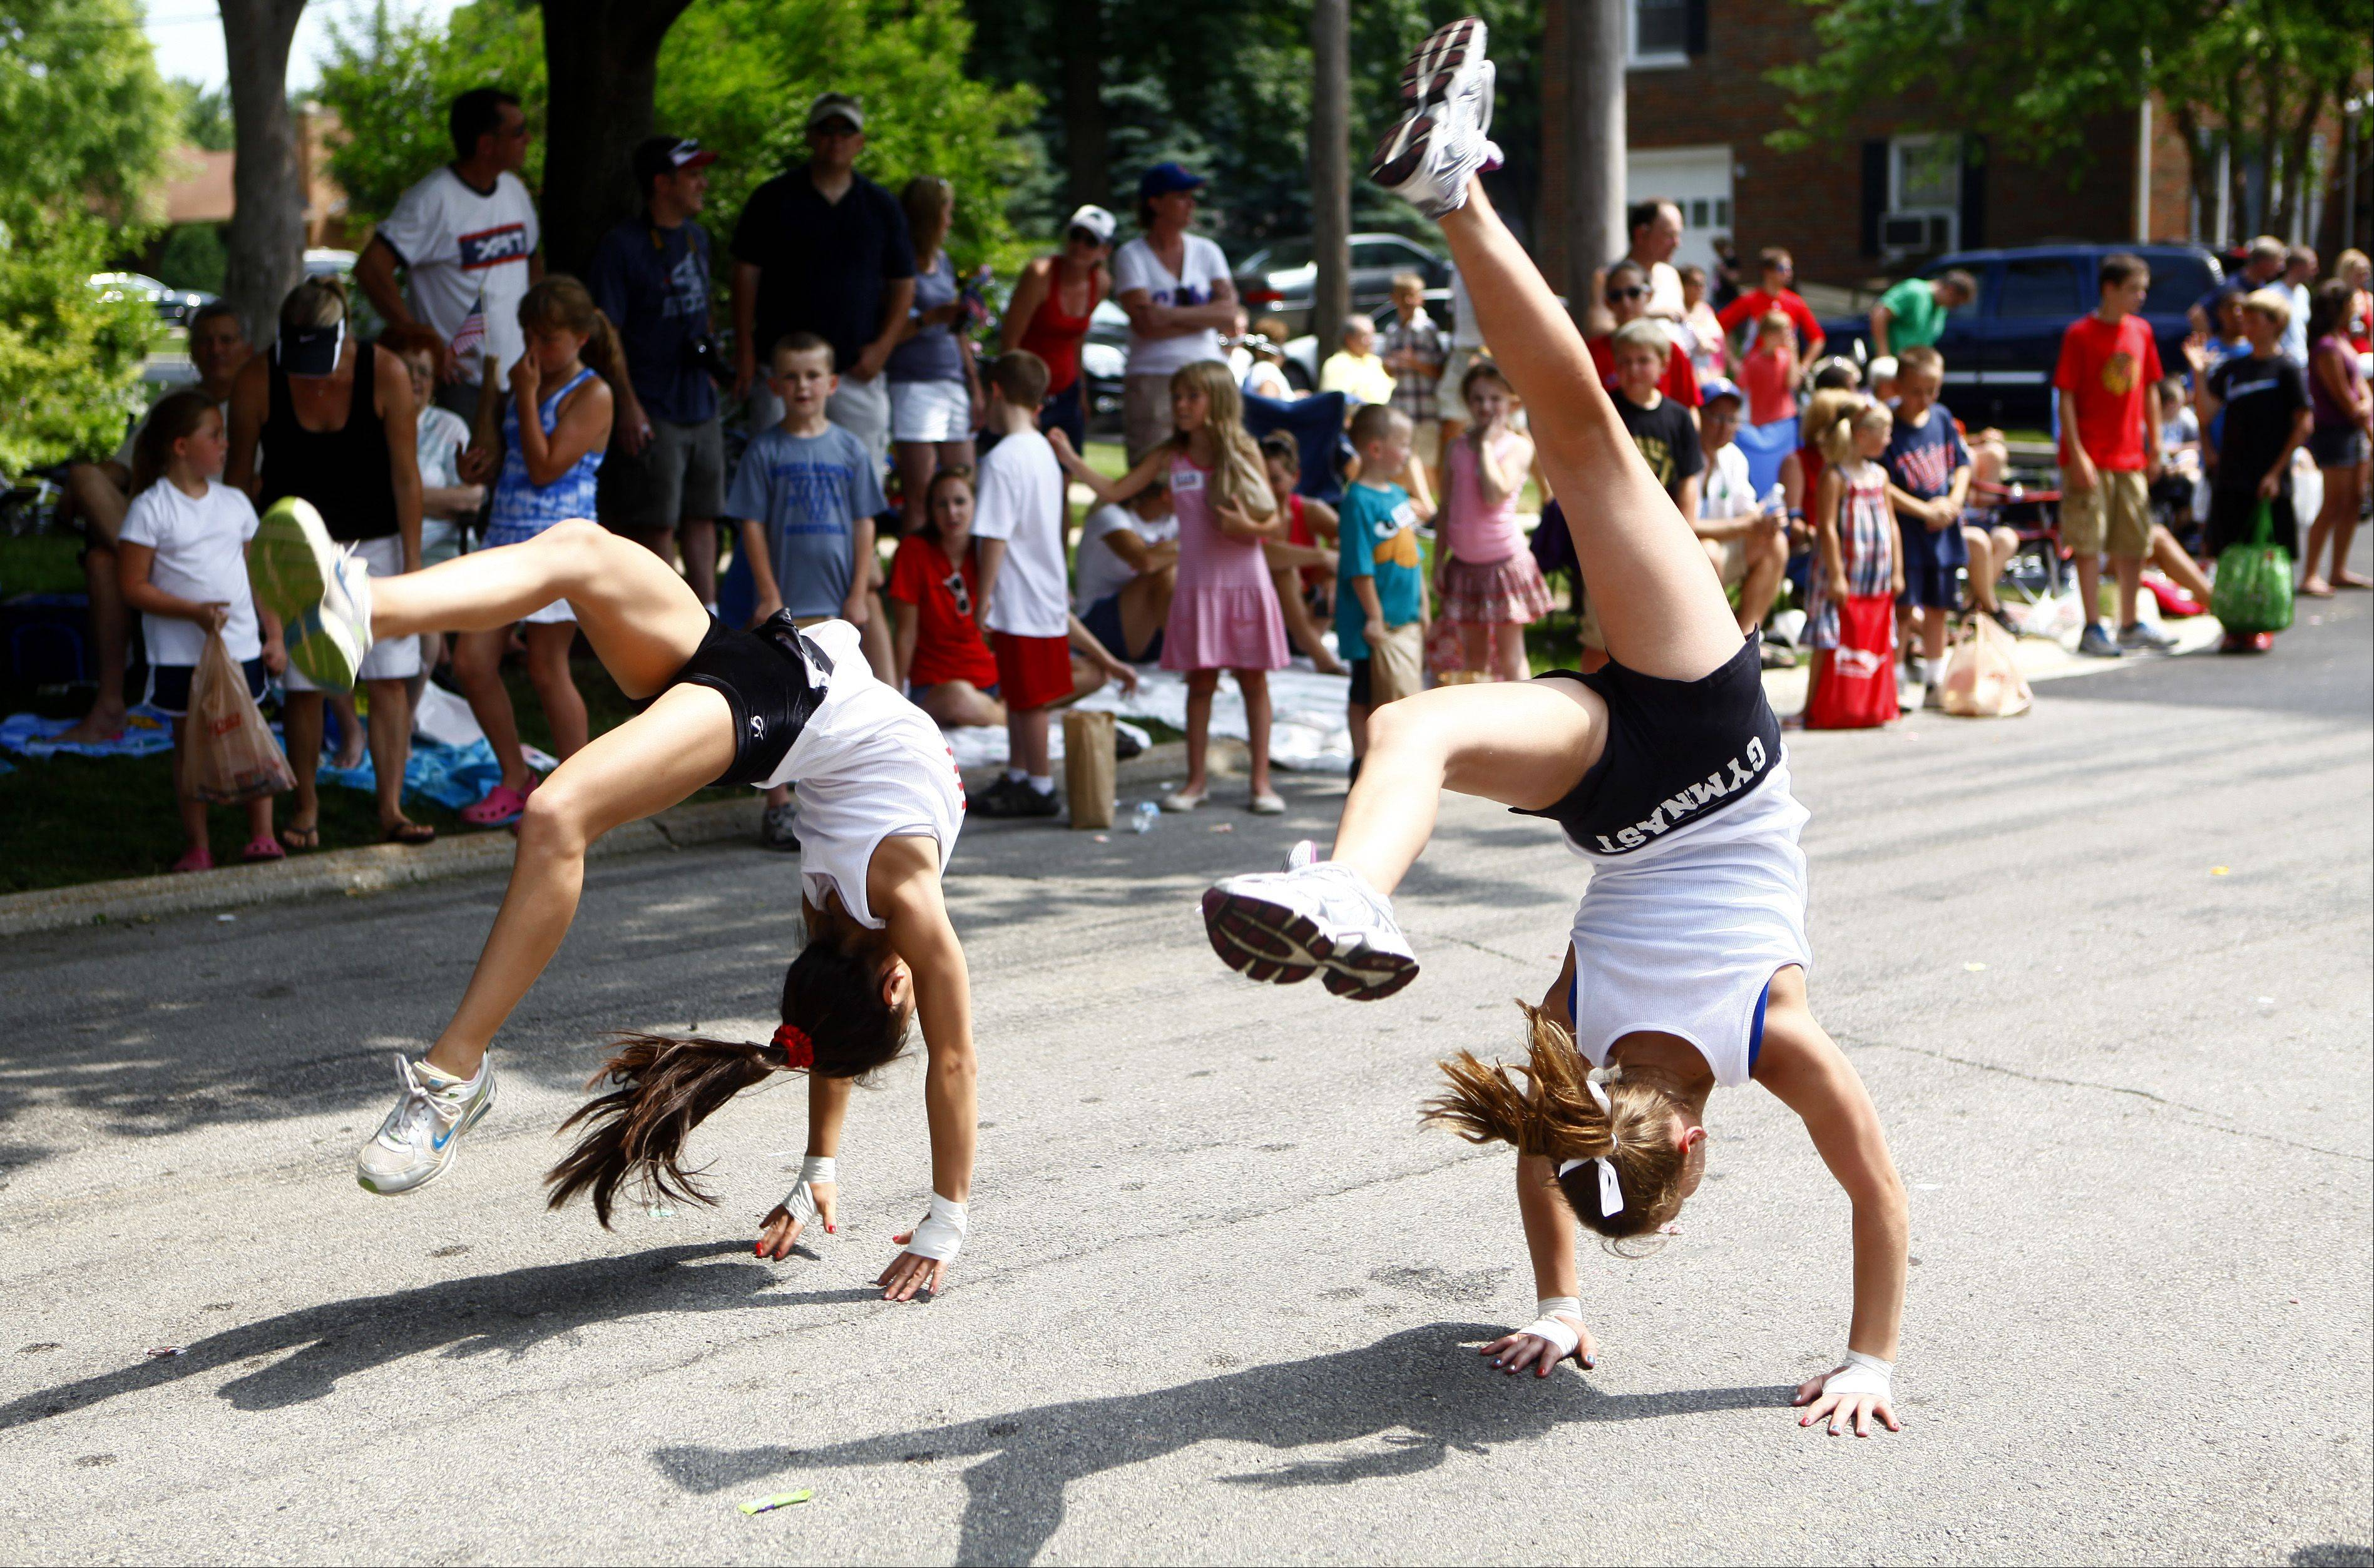 Anna Osowski, left, 12, from Barrington and Abby Moran, 11 from Rolling Meadows, perform a series of back flips for the crowd during the annual Palatine Jaycees Independence Day Parade Saturday morning.